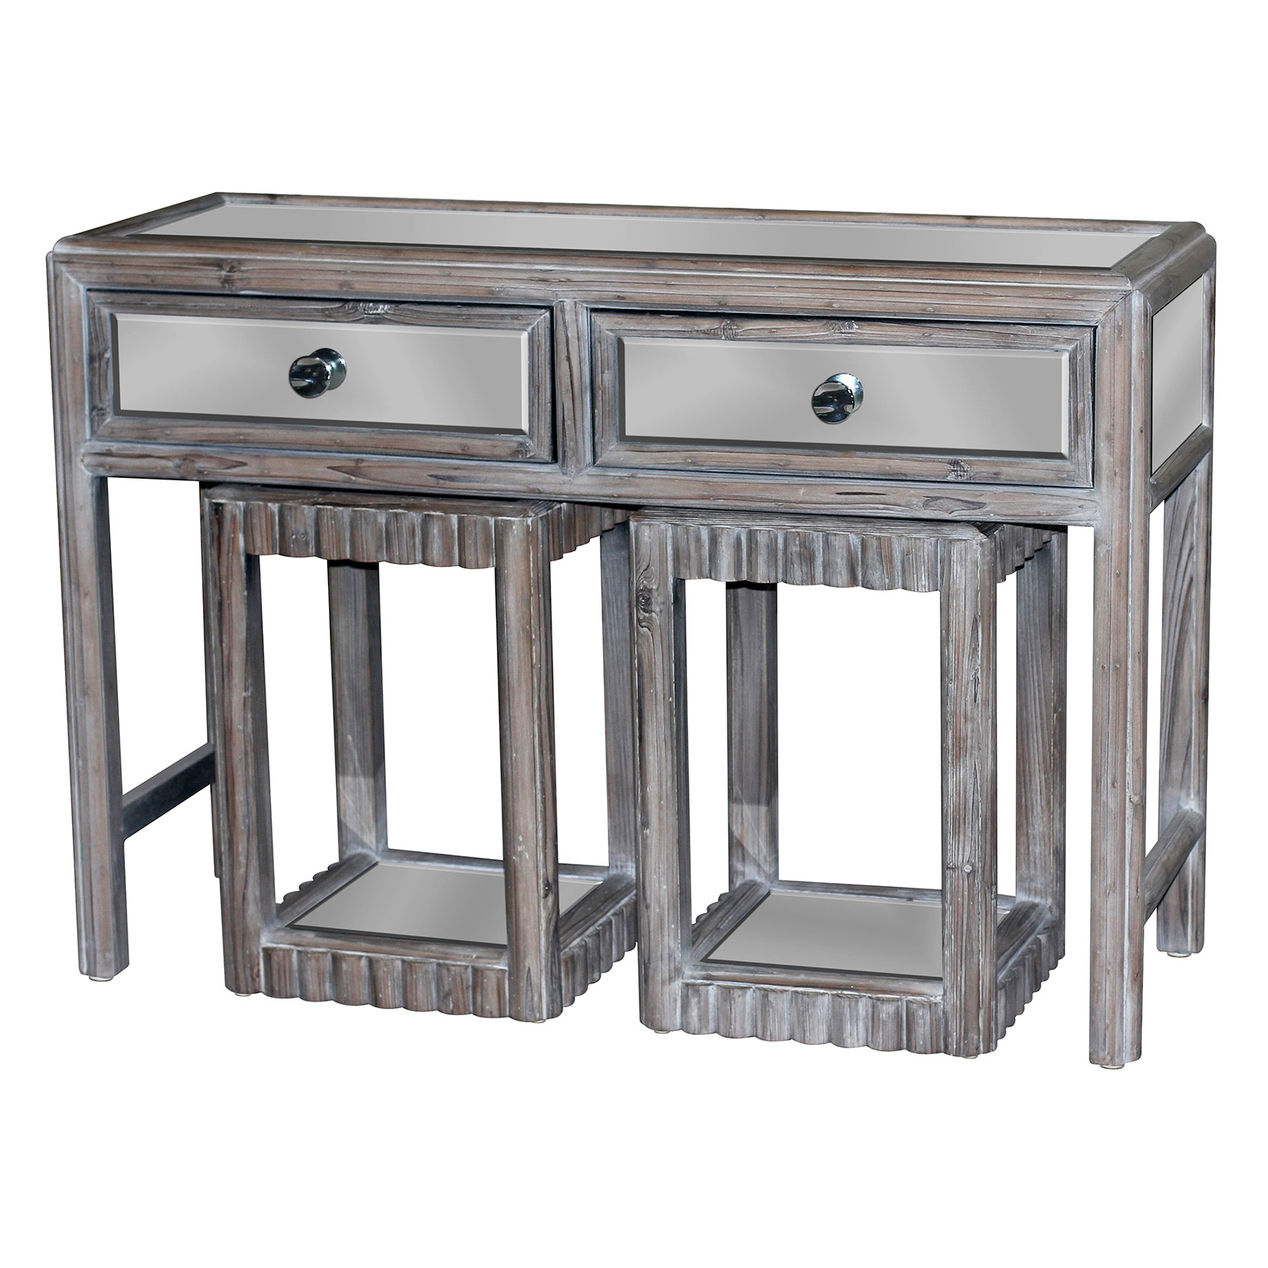 mirrored bamboo accent table each and the desk sold tables with matching mirrors separately furniture glass entrance small square pier one chairs futon covers nate berkus sheets